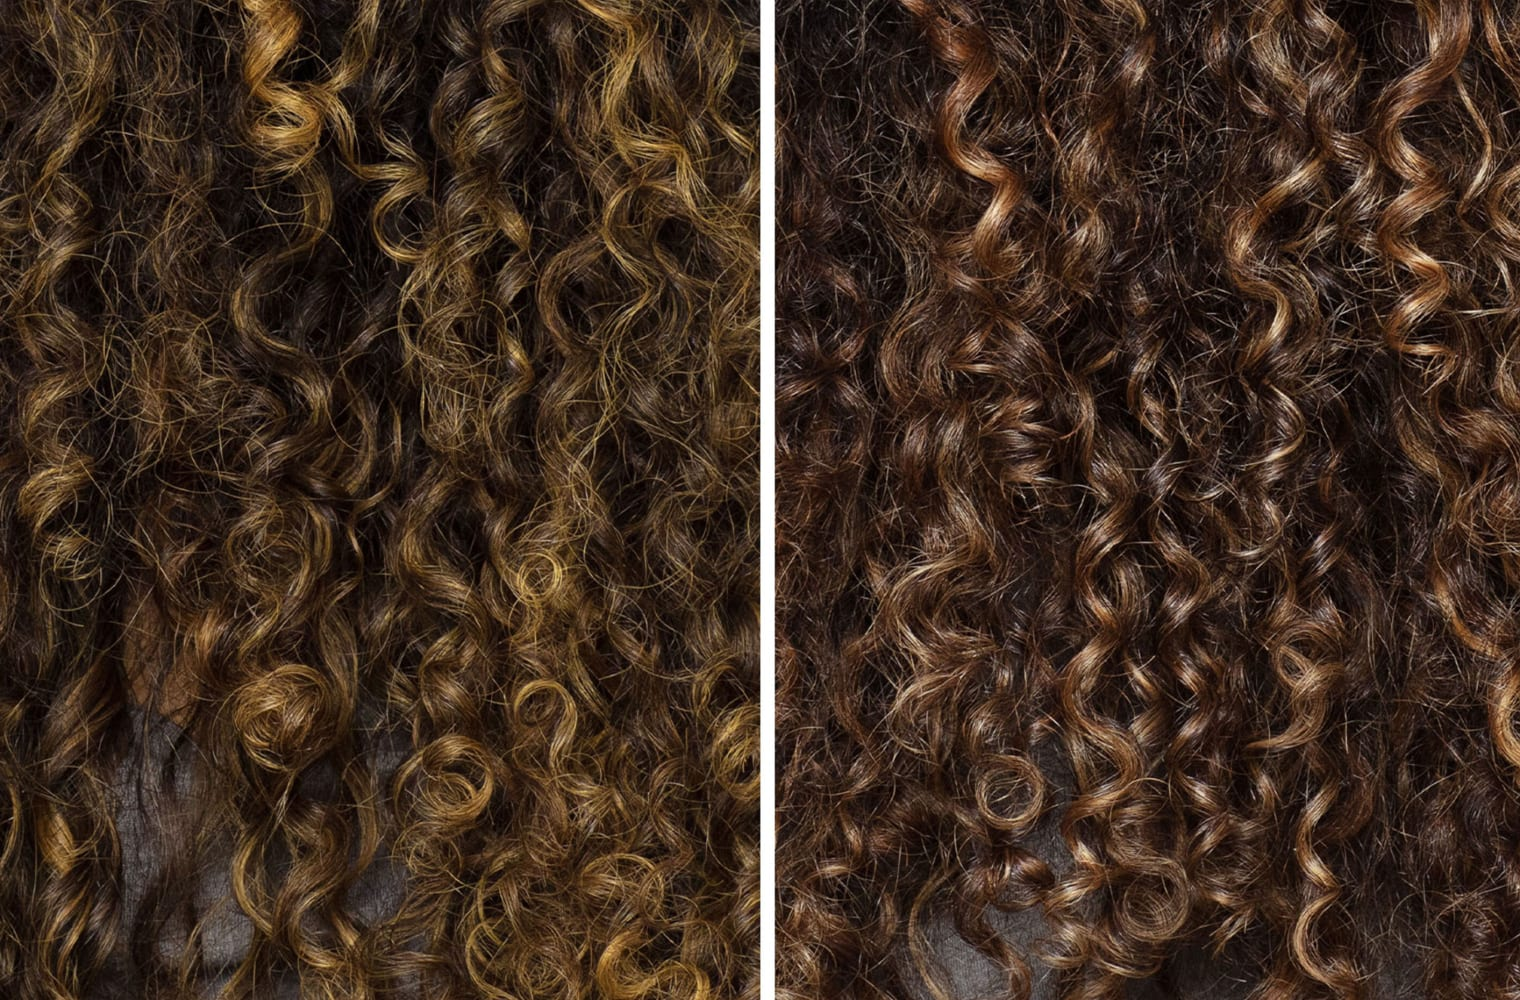 split screen before and after shots of curly hair